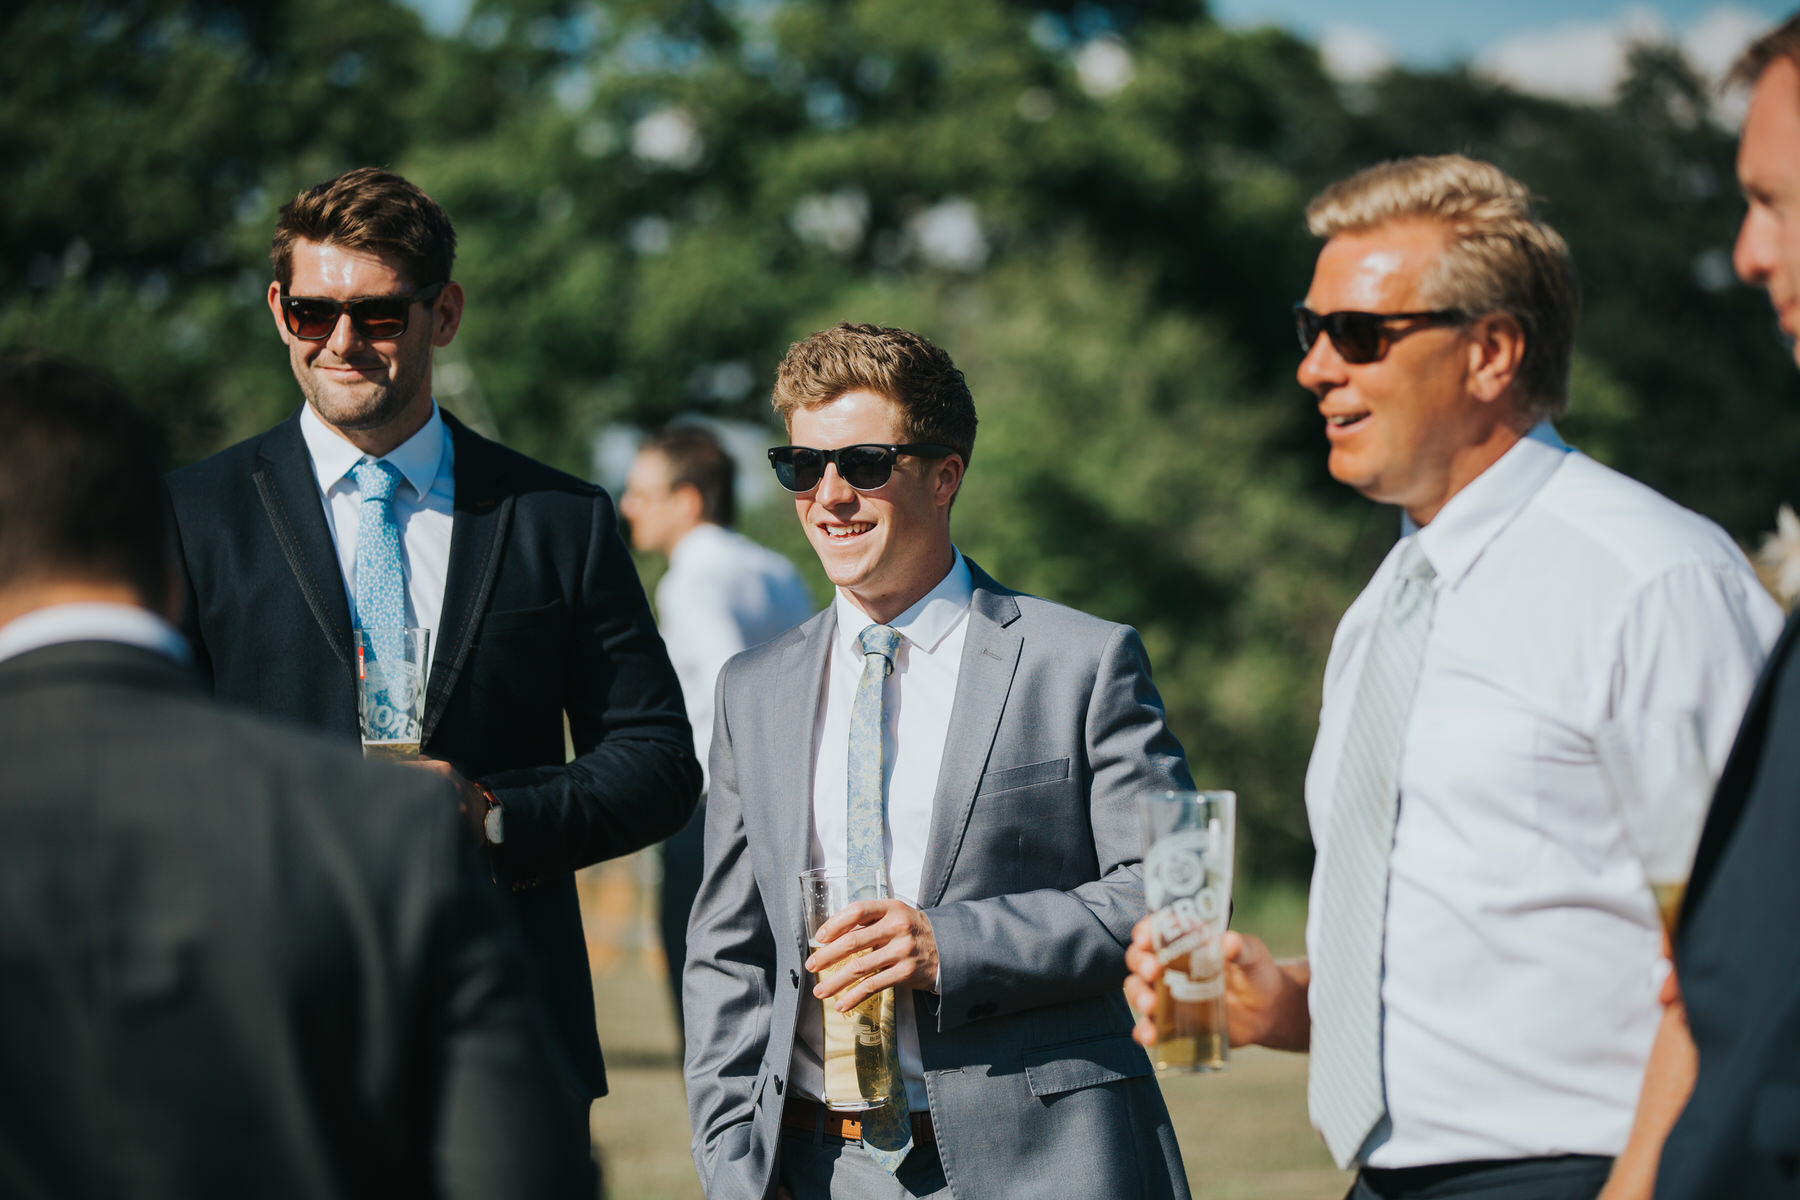 203 wedding guest reportage Knepp Castle photographer.jpg